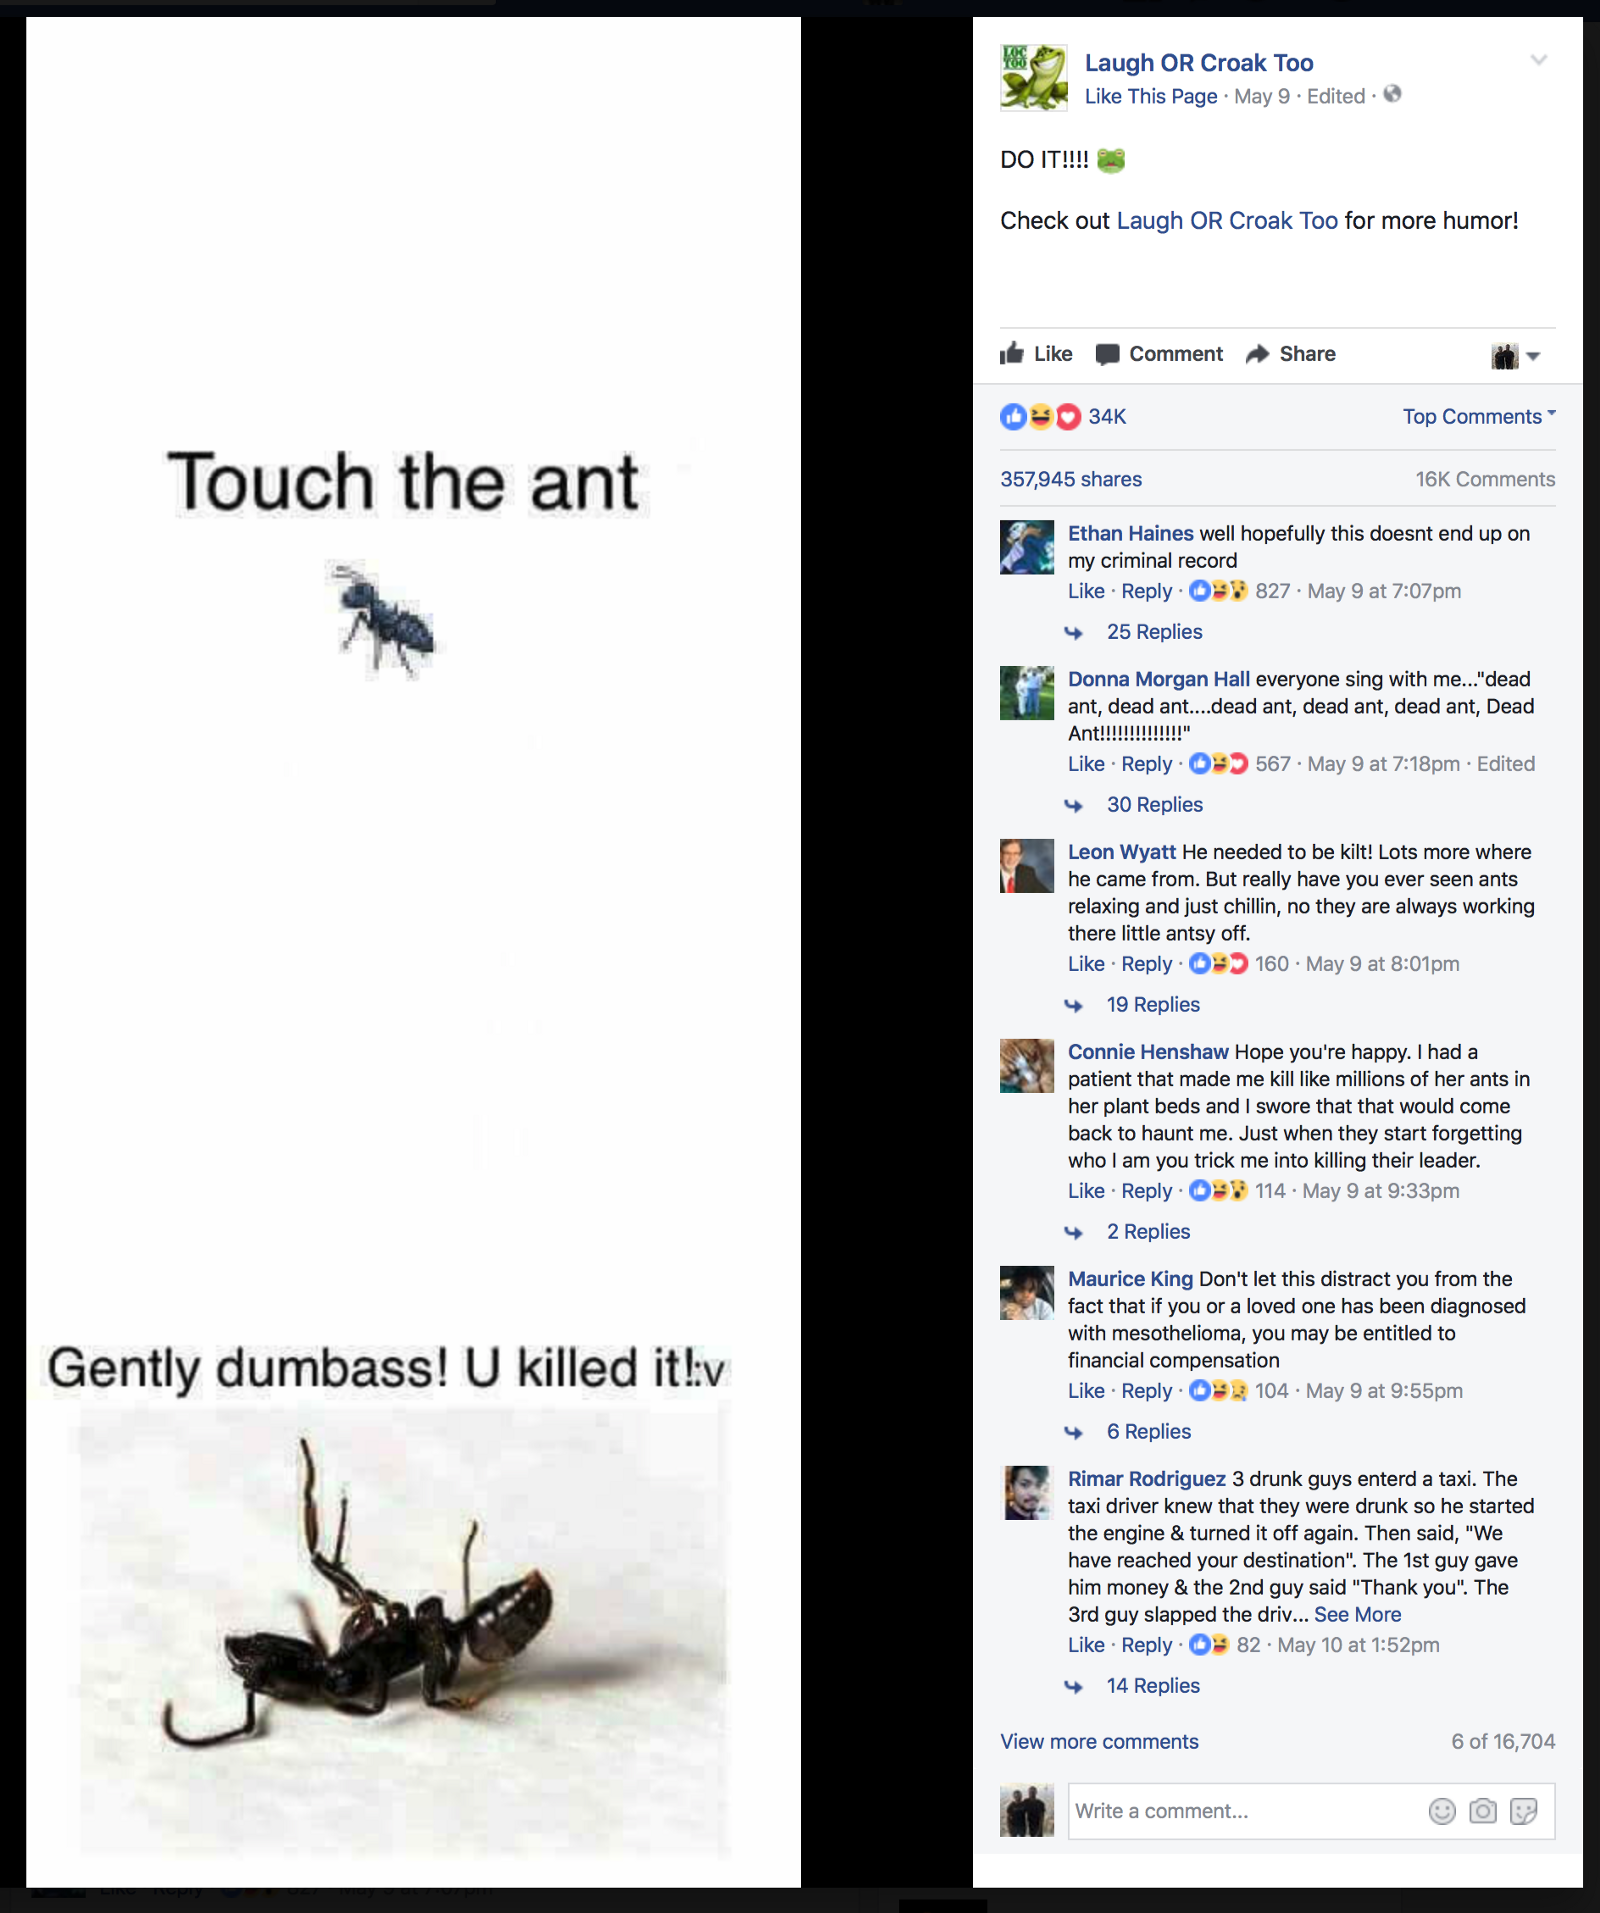 How The Touch The Ant Meme Became A New Facebook Art Form